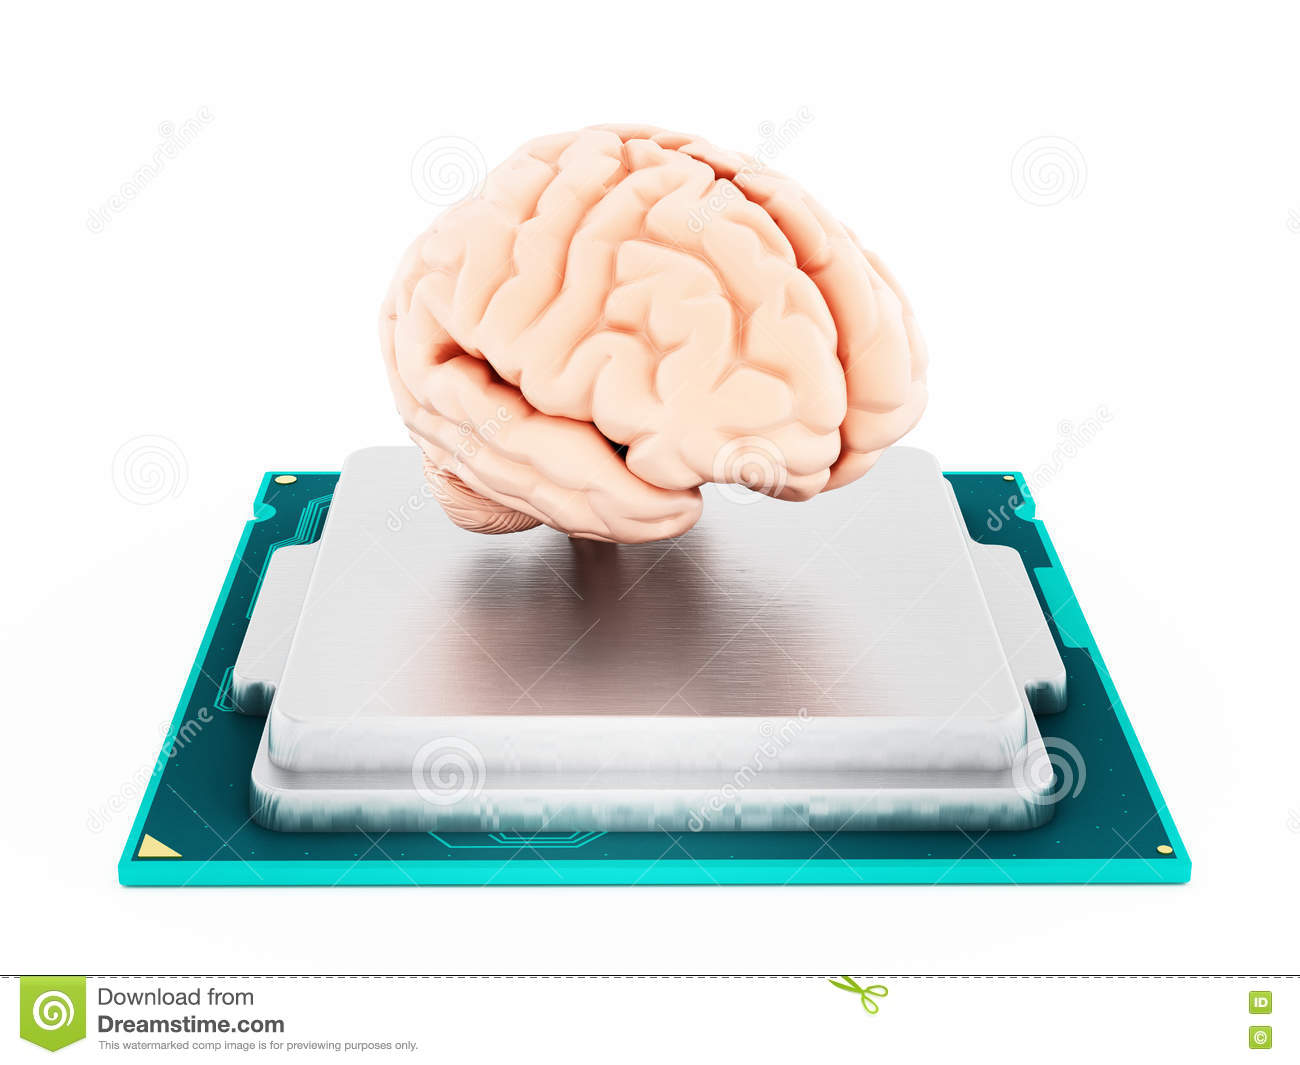 microprocessor and human brain 3d illustration stock illustrationmicroprocessor and human brain isolated on white background 3d illustration